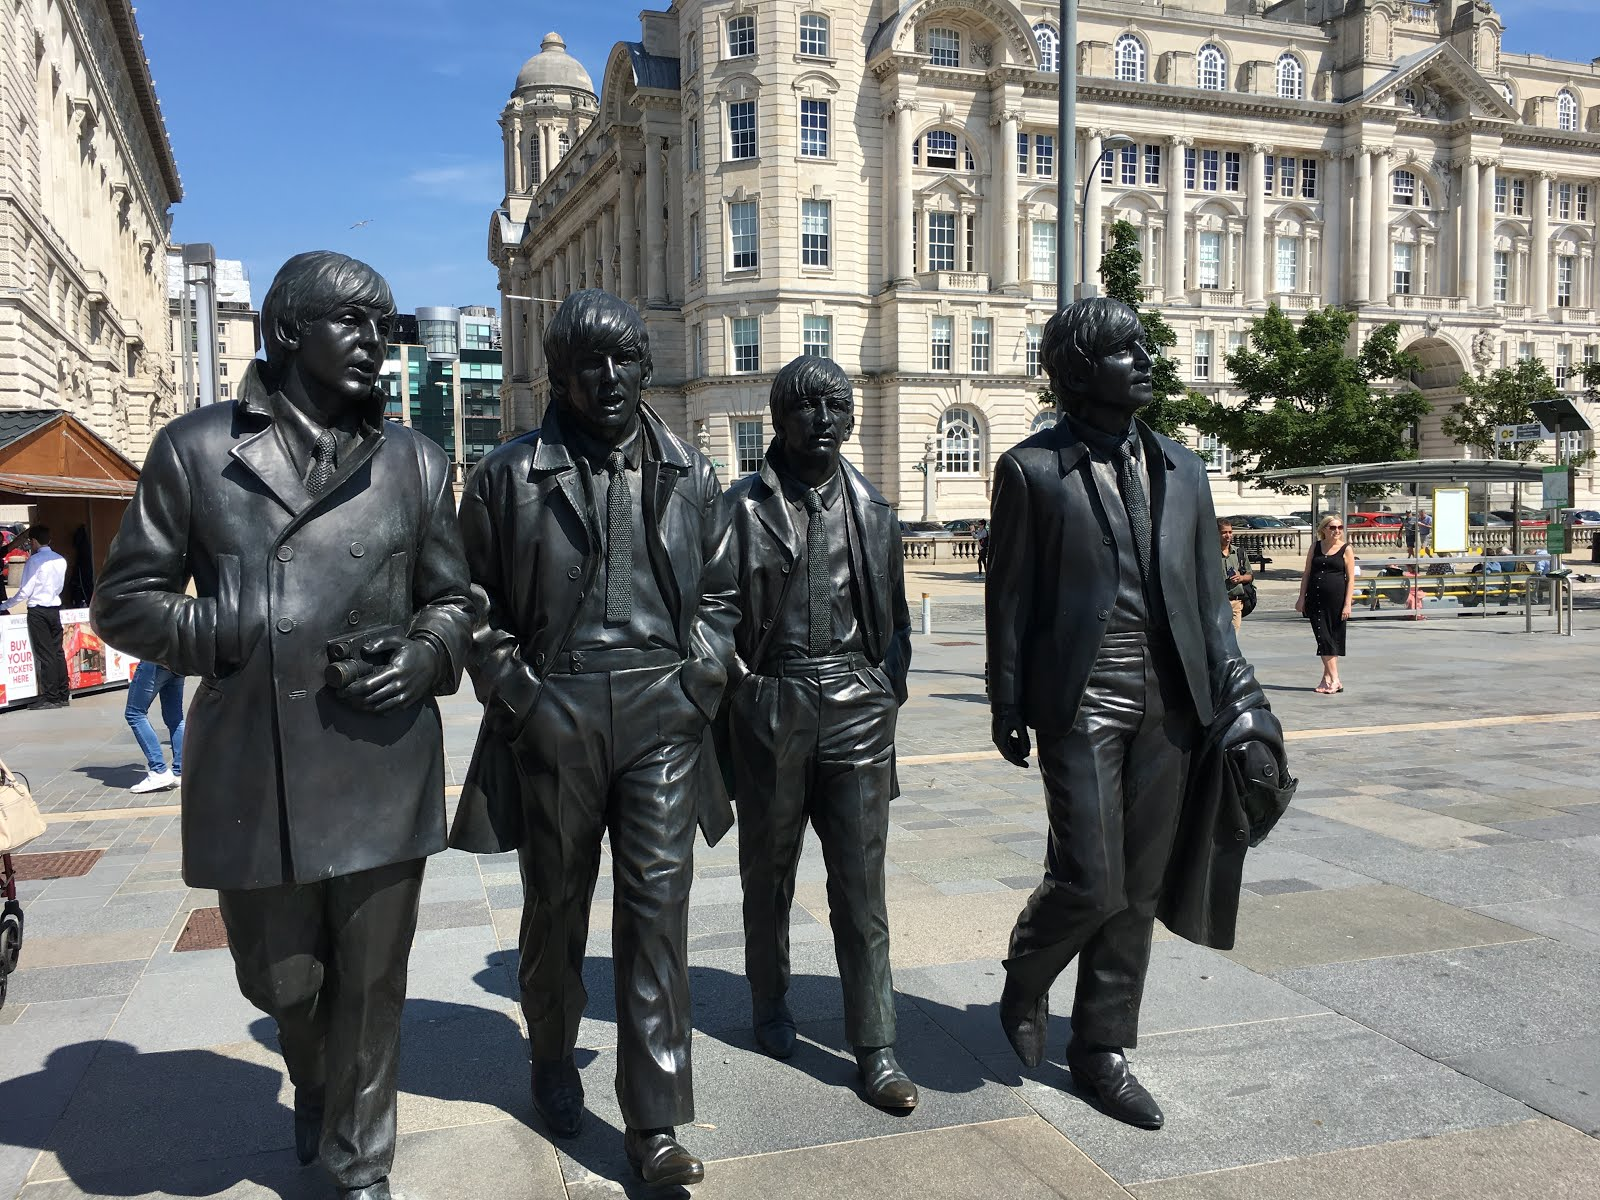 Beatles - Liverpool, England